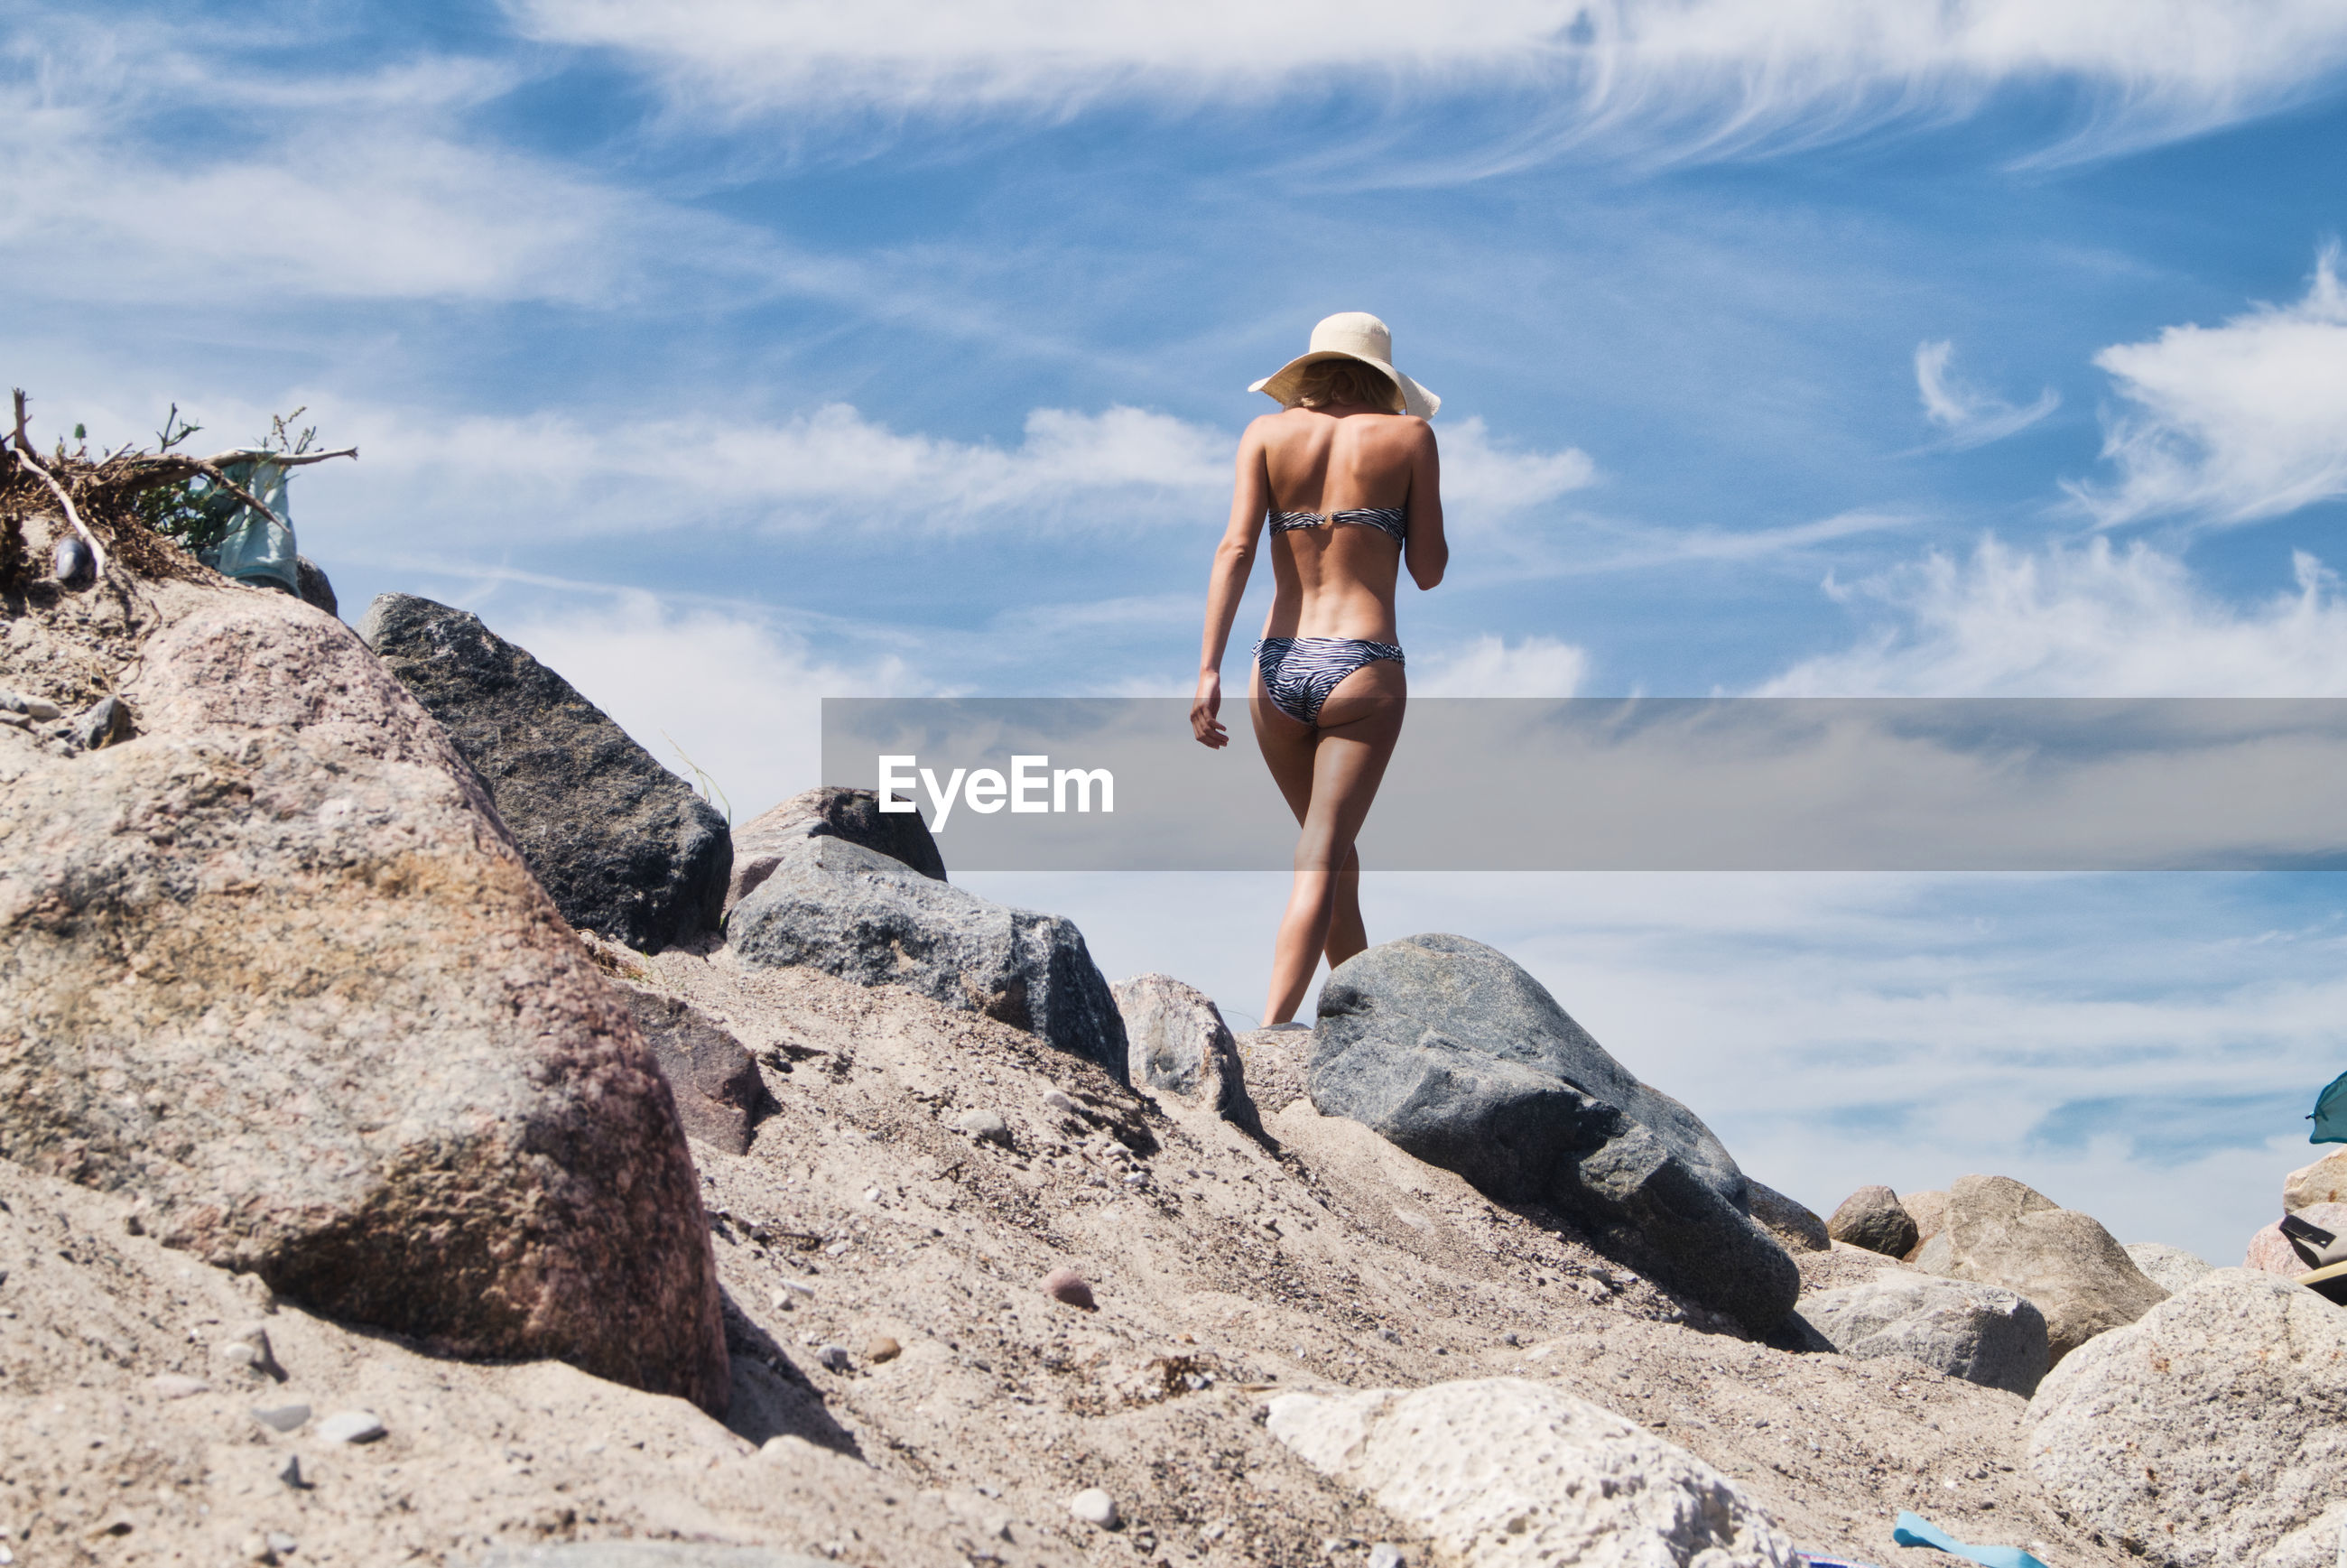 Rear view of woman wearing bikini while walking on land against sky